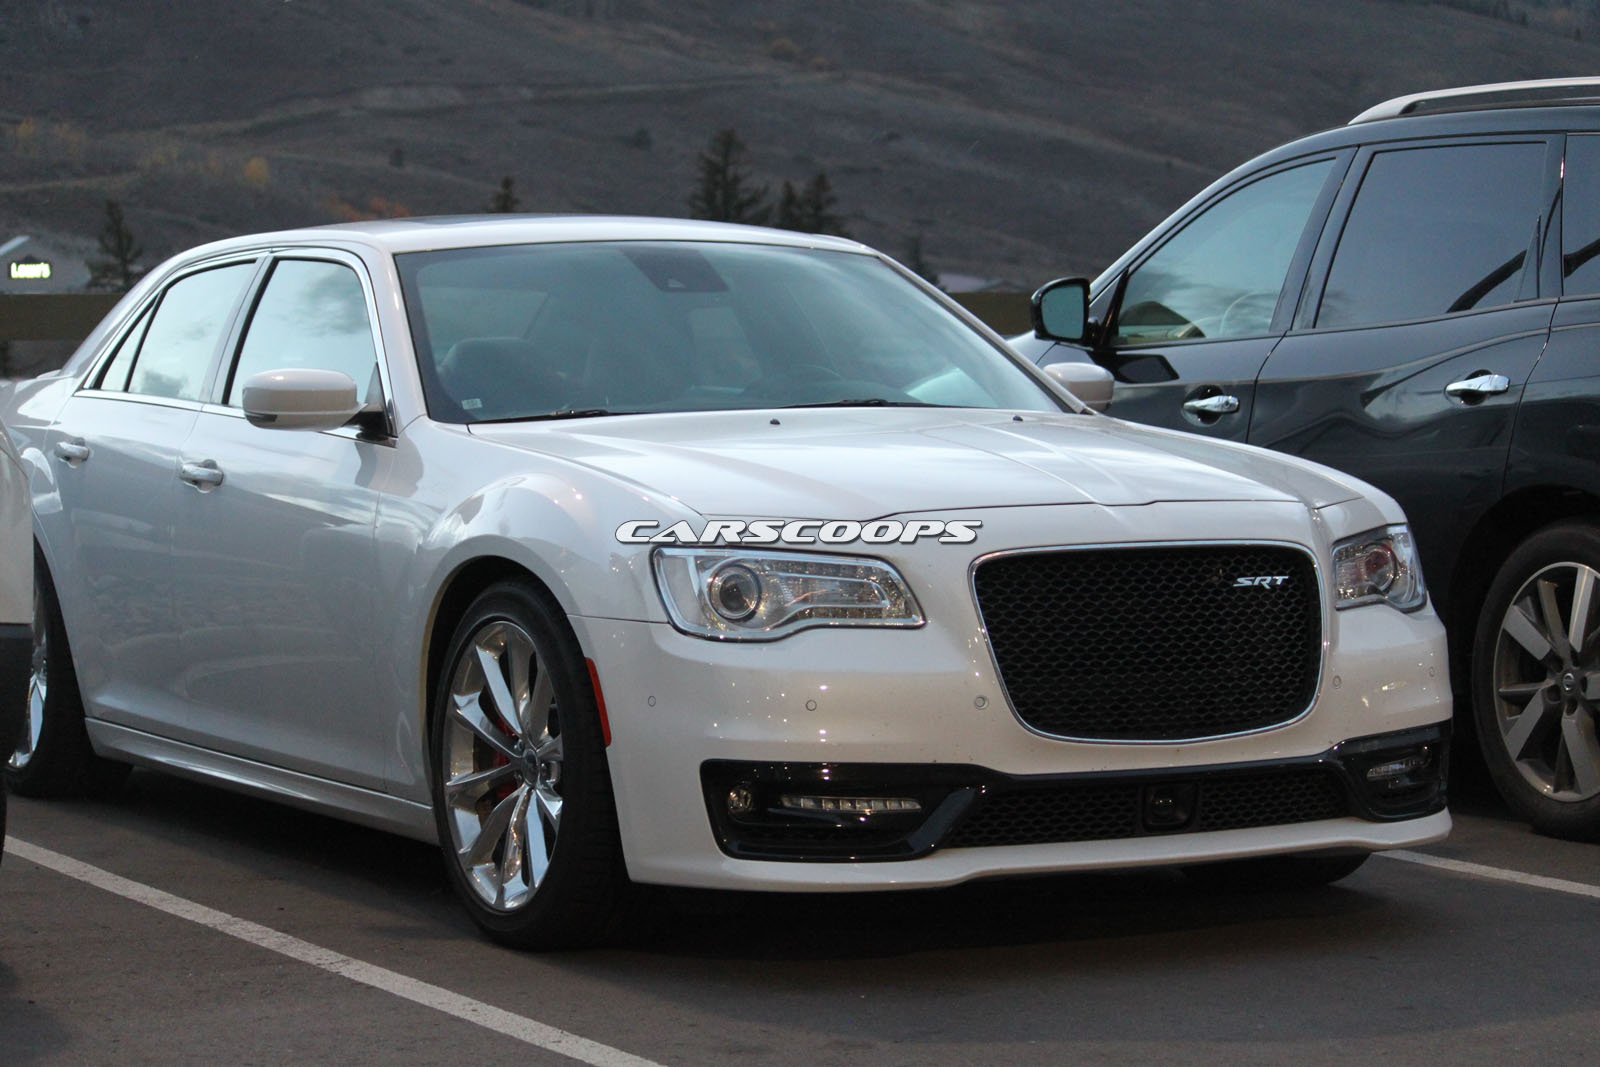 chrysler 300 srt spotted stateside raises questions eyebrows carscoops. Black Bedroom Furniture Sets. Home Design Ideas